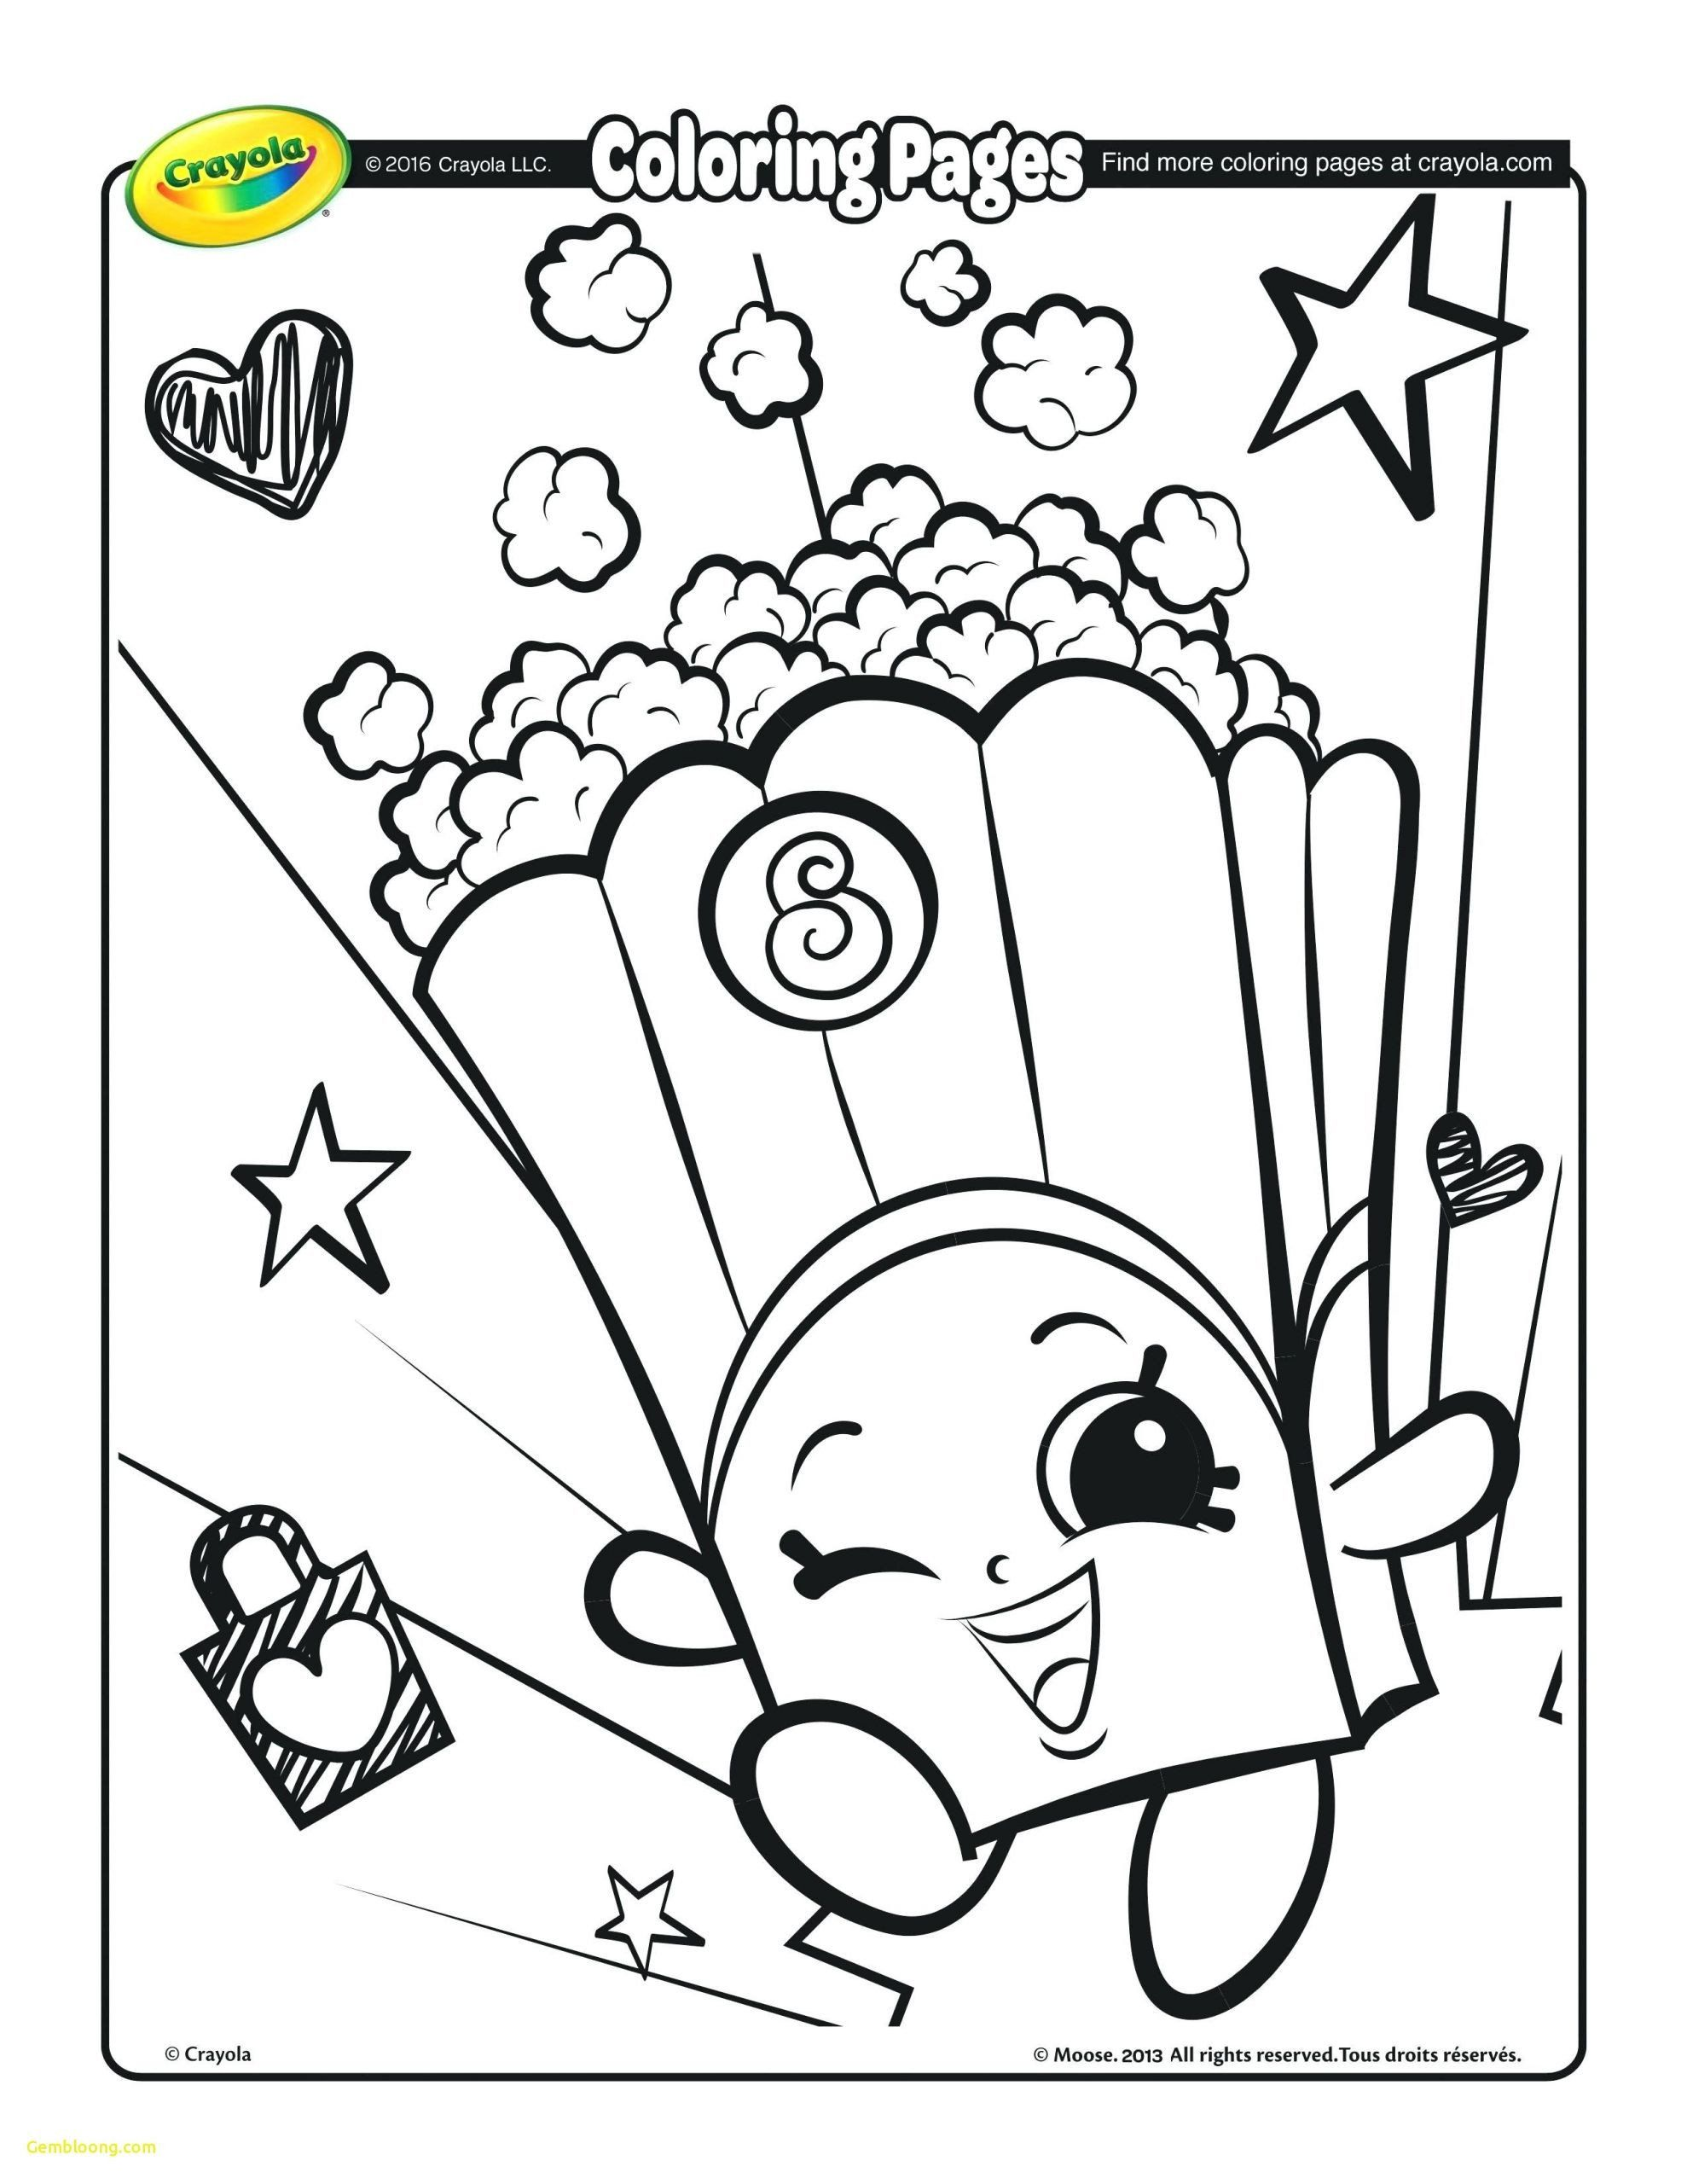 Free Coloring Page Com Coloring Pages Crayola Free Coloring Pages Unique Coloring Shopkins Colouring Pages Shopkin Coloring Pages Halloween Coloring Pages